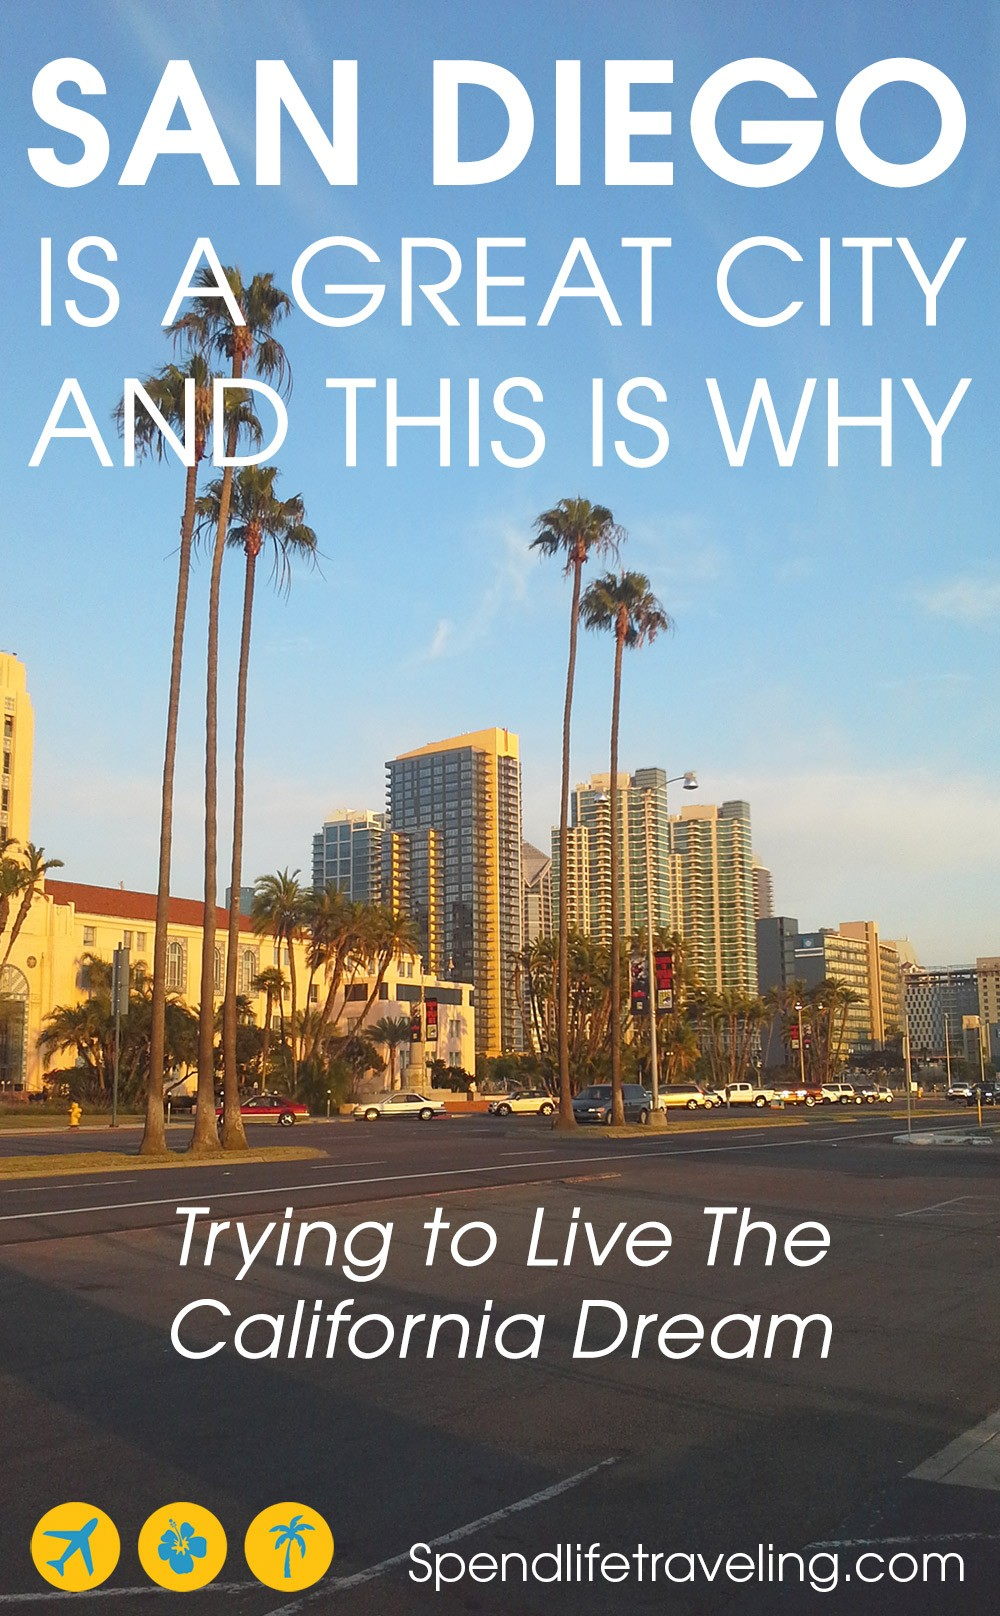 Why San Diego is a great city - my experiences trying to live the California Dream. In this article I share what I like and dislike about San Diego and why I think it is a great city to travel to or maybe even move to. #SanDiego #CaliforniaDream #visitCalifornia #travelCalifornia